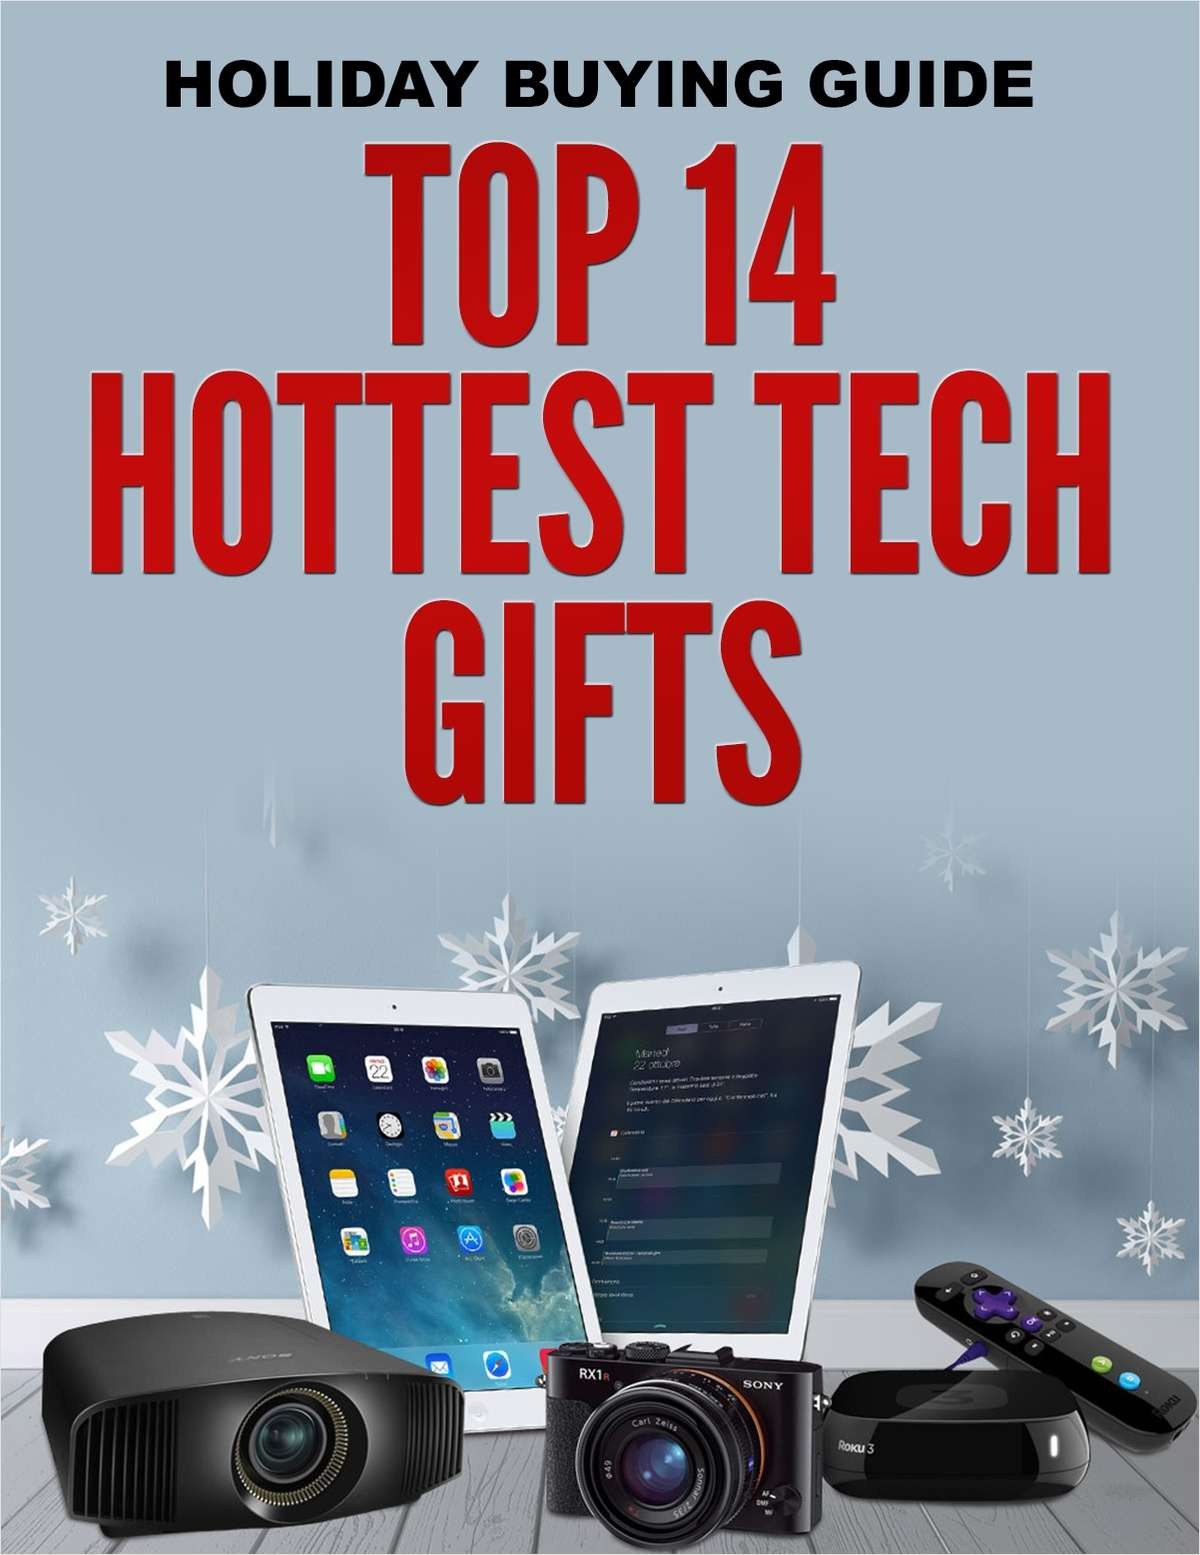 Holiday Buying Guide - Top 14 Hottest Tech Gifts